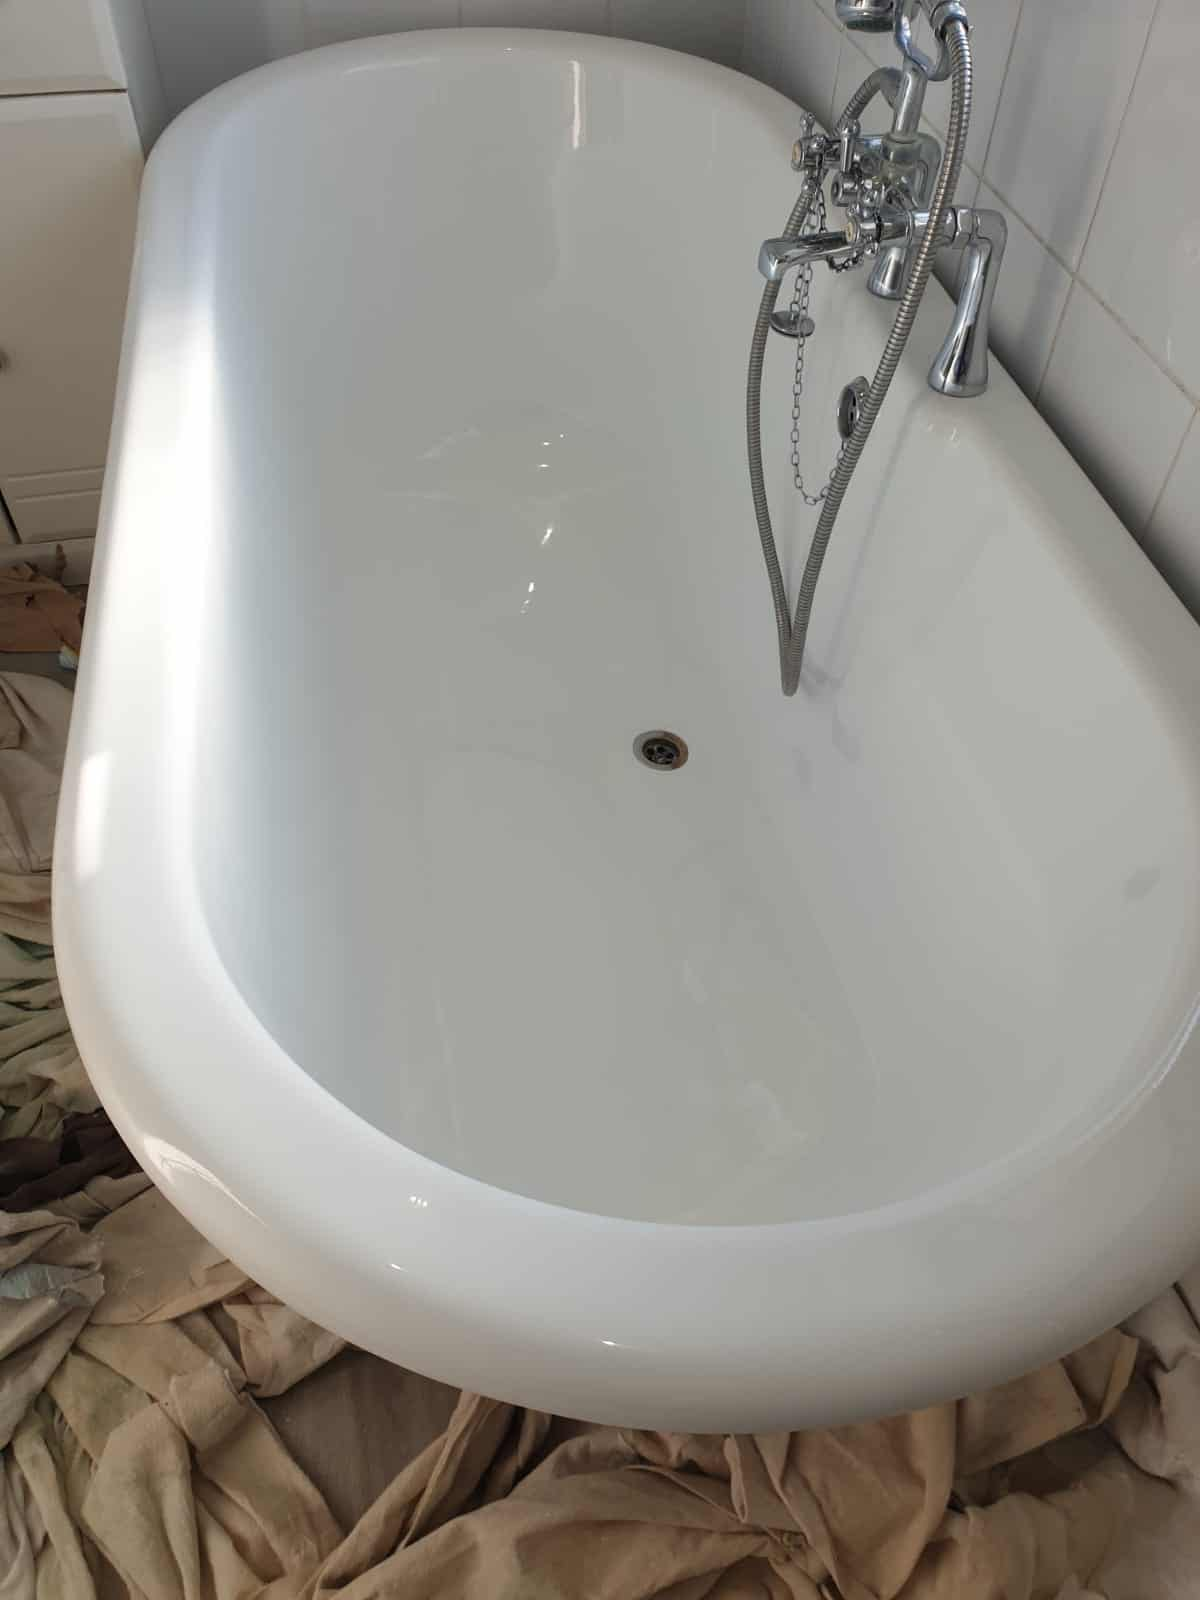 5 common examples of acrylic shower tray repair and acrylic bath repair. 14